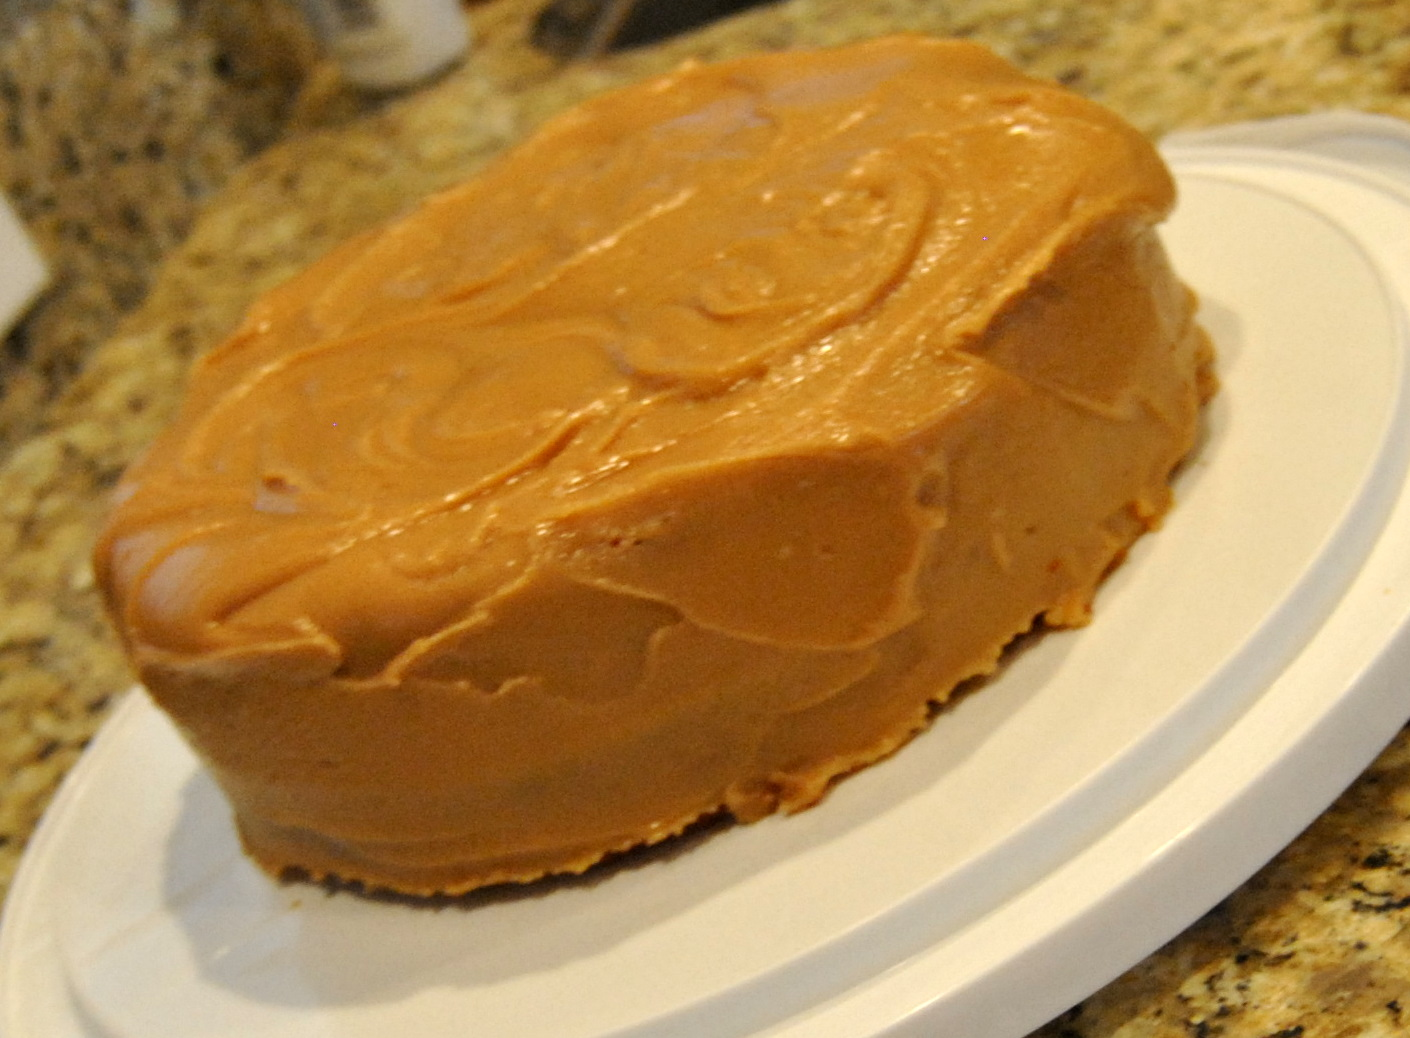 Bottom line is, it's a basic, yellow cake with peanut butter fudge ...